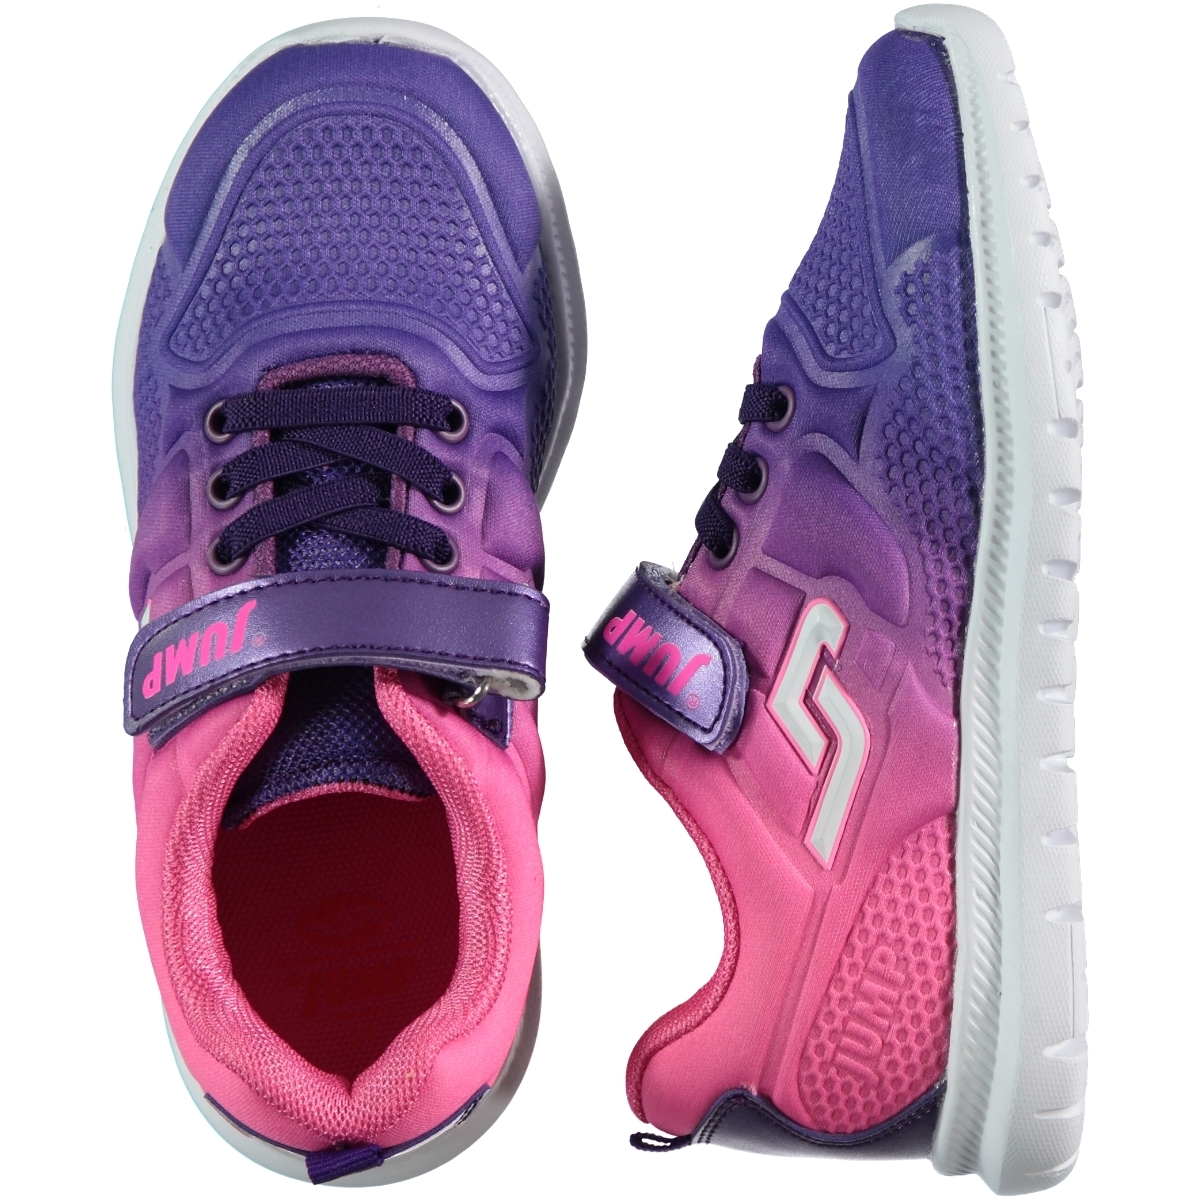 Jump 31-35 Number Of Children's Sports Shoes Purple